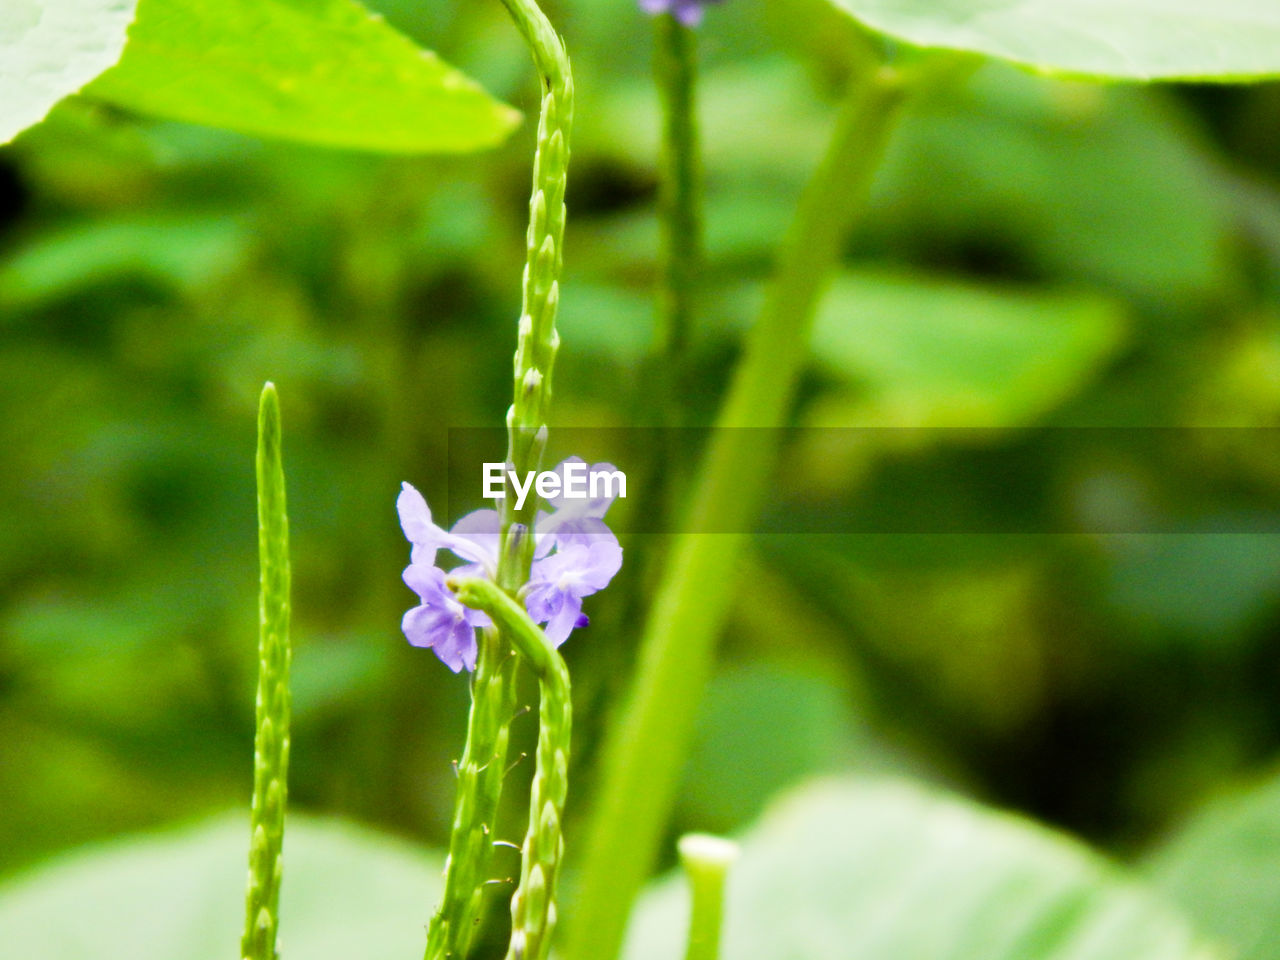 nature, growth, flower, plant, green color, beauty in nature, fragility, day, no people, outdoors, freshness, close-up, blooming, flower head